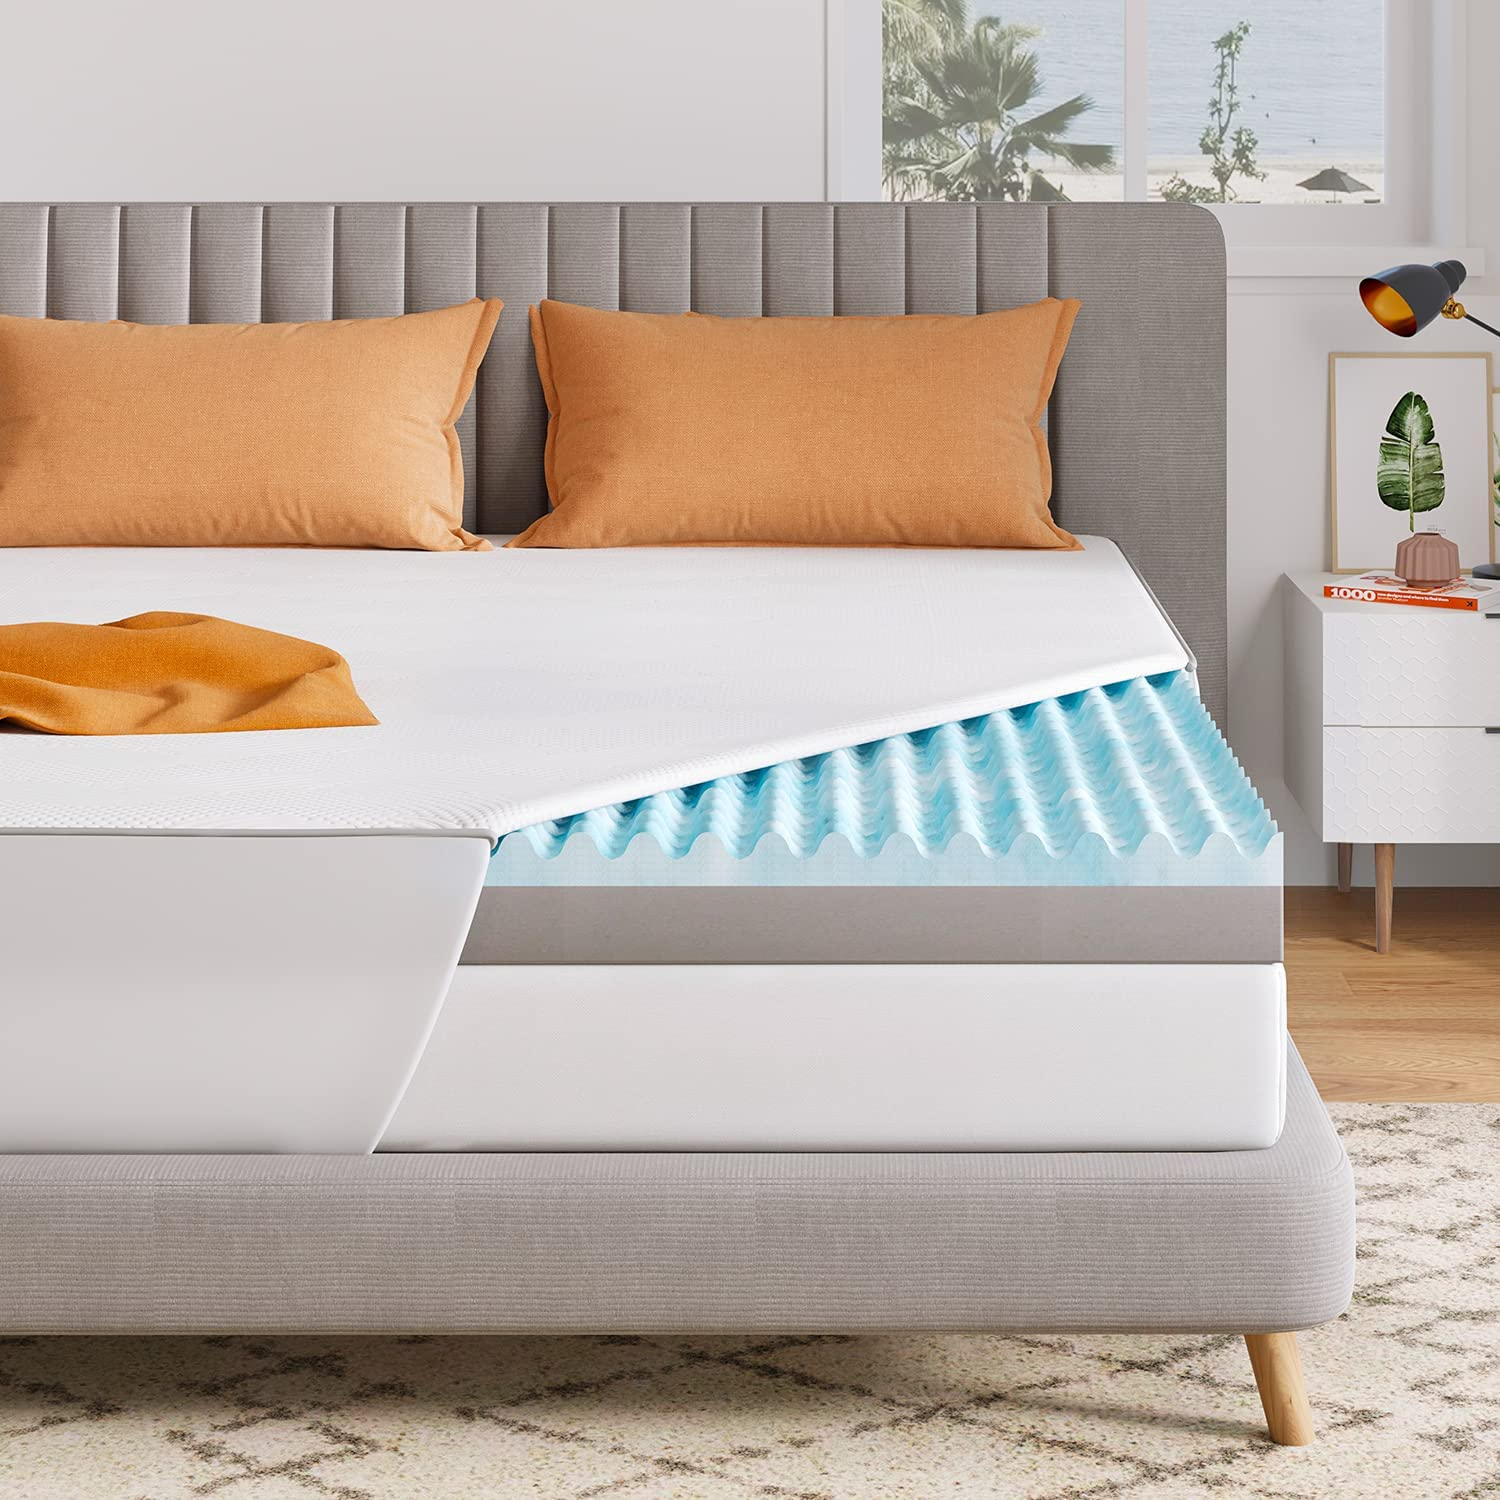 Lowest price challenge Sweetnight Mattress Topper Queen Complete Free Shipping 3 Infused Dual Inch Gel Layer